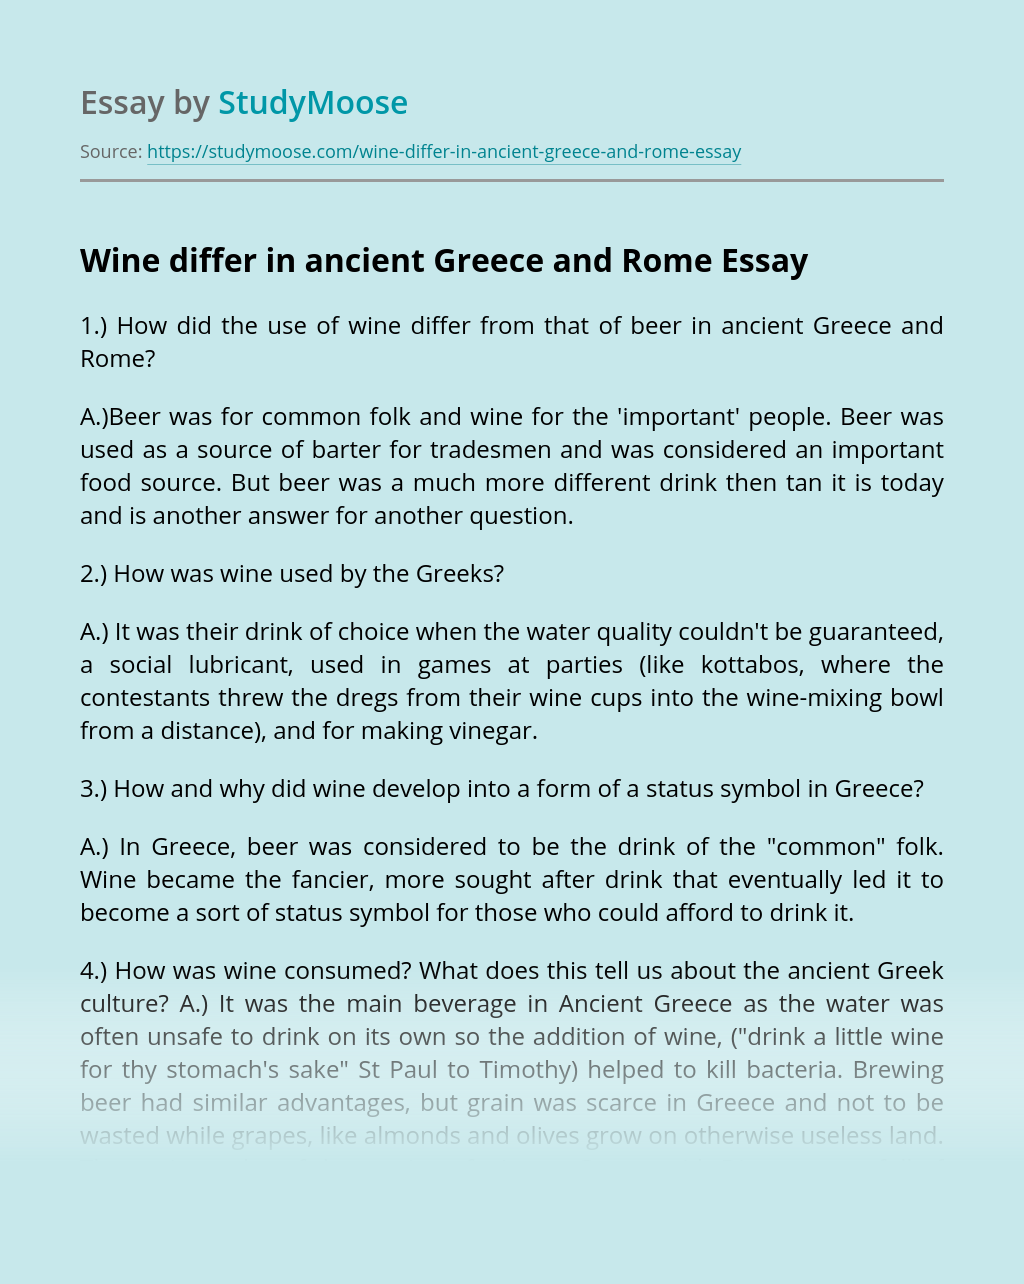 Wine differ in ancient Greece and Rome